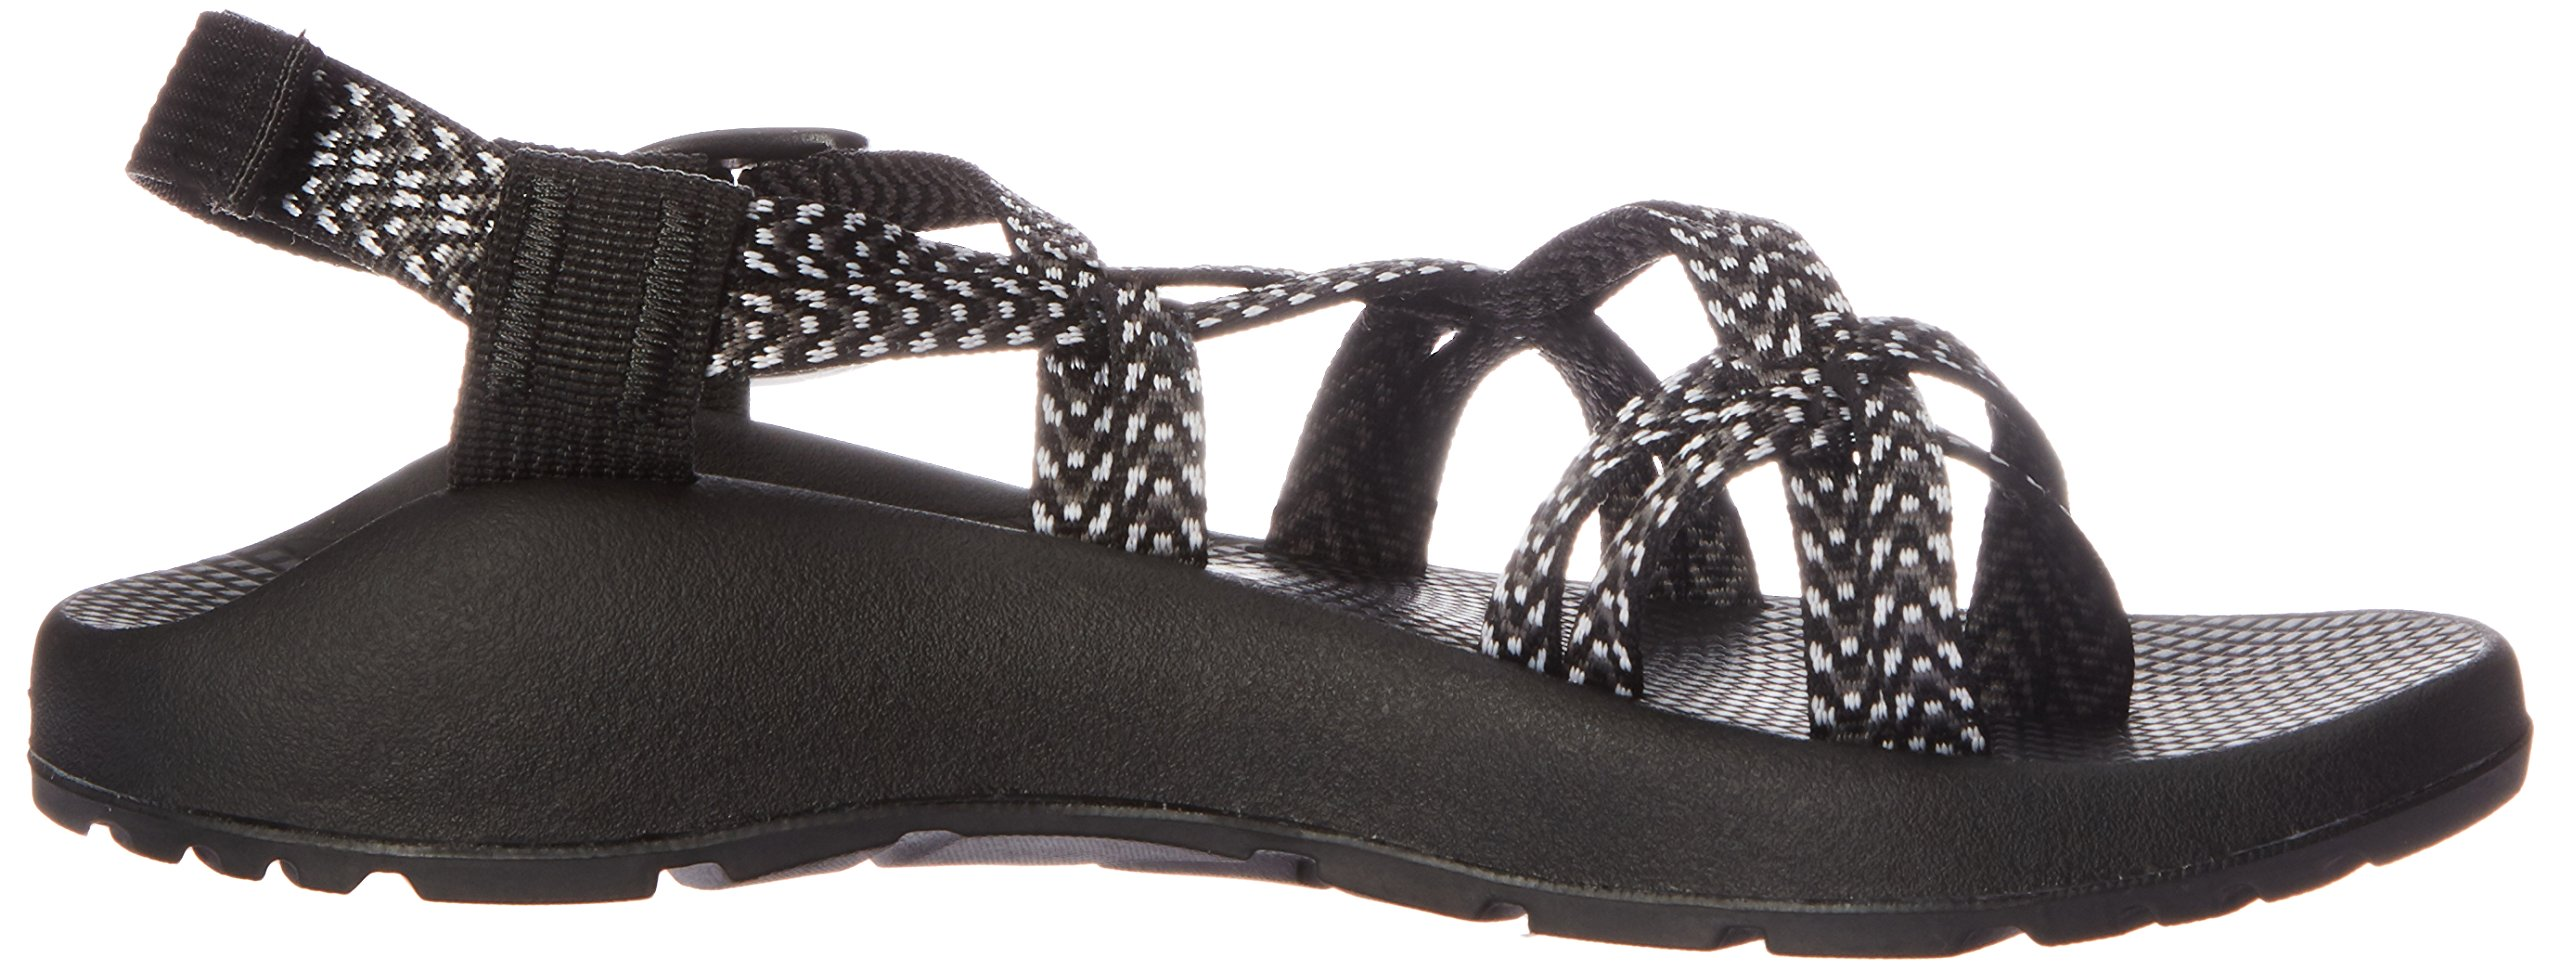 Chaco Women's ZX2 Classic Athletic Sandal, Boost Black, 7 M US by Chaco (Image #7)